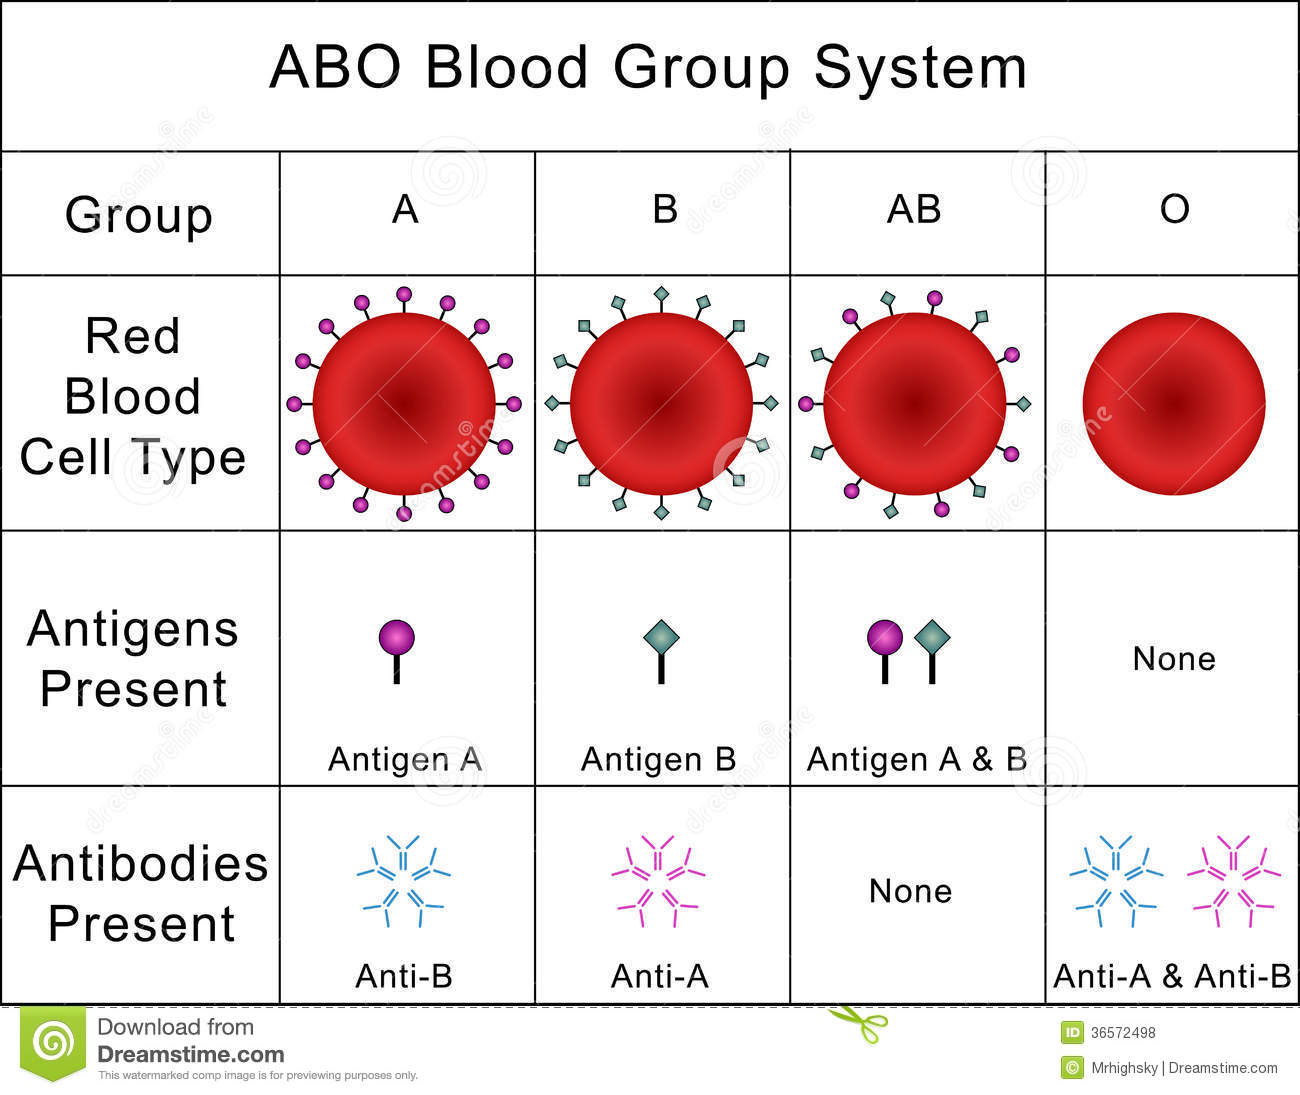 Abo Blood-Group System (ABO Factors; ABH Blood Group)